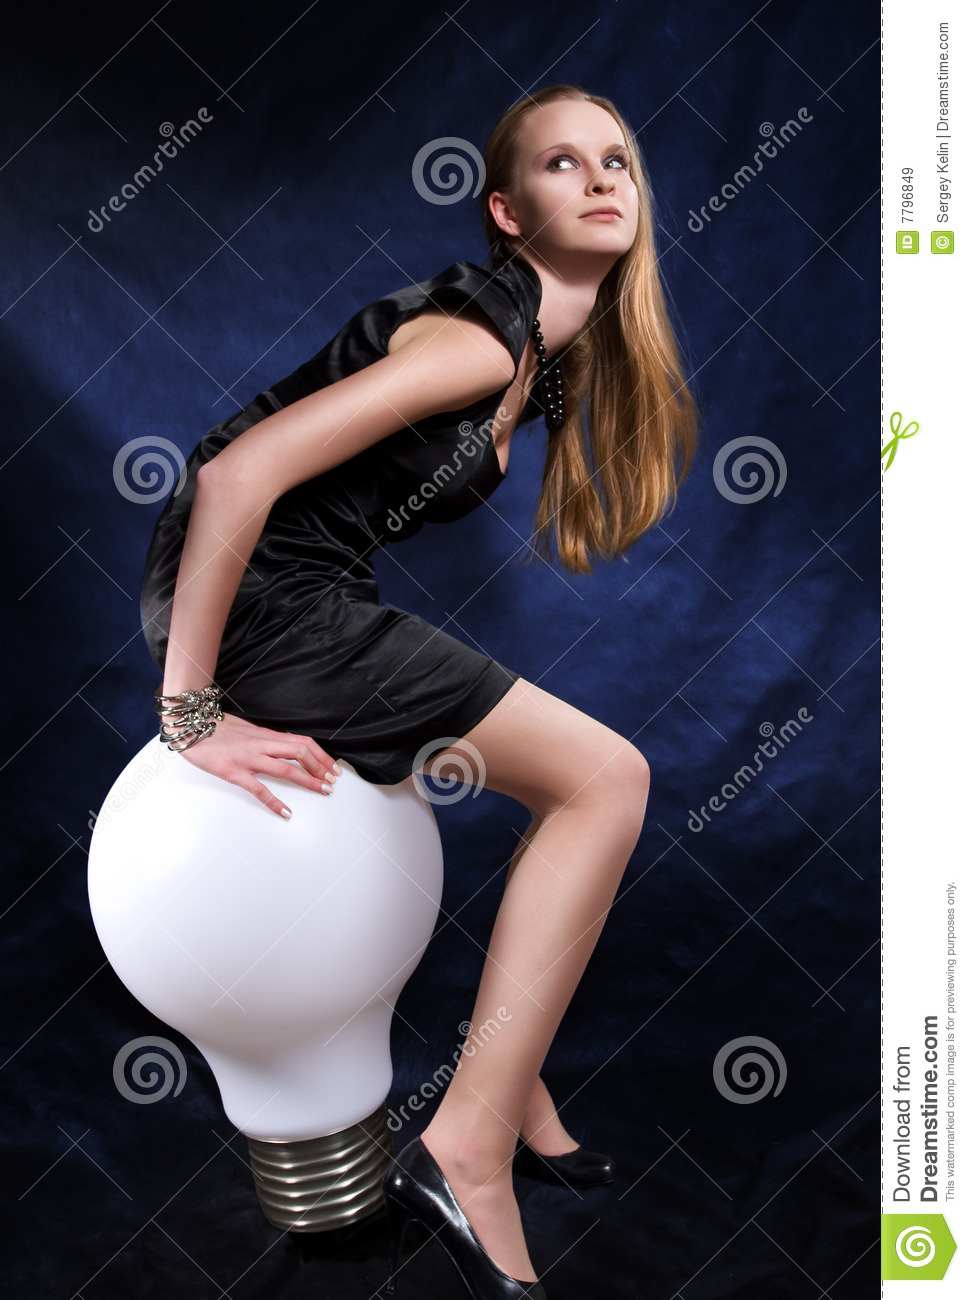 Girl Witn The Beeg Lamp Royalty Free Stock Photography